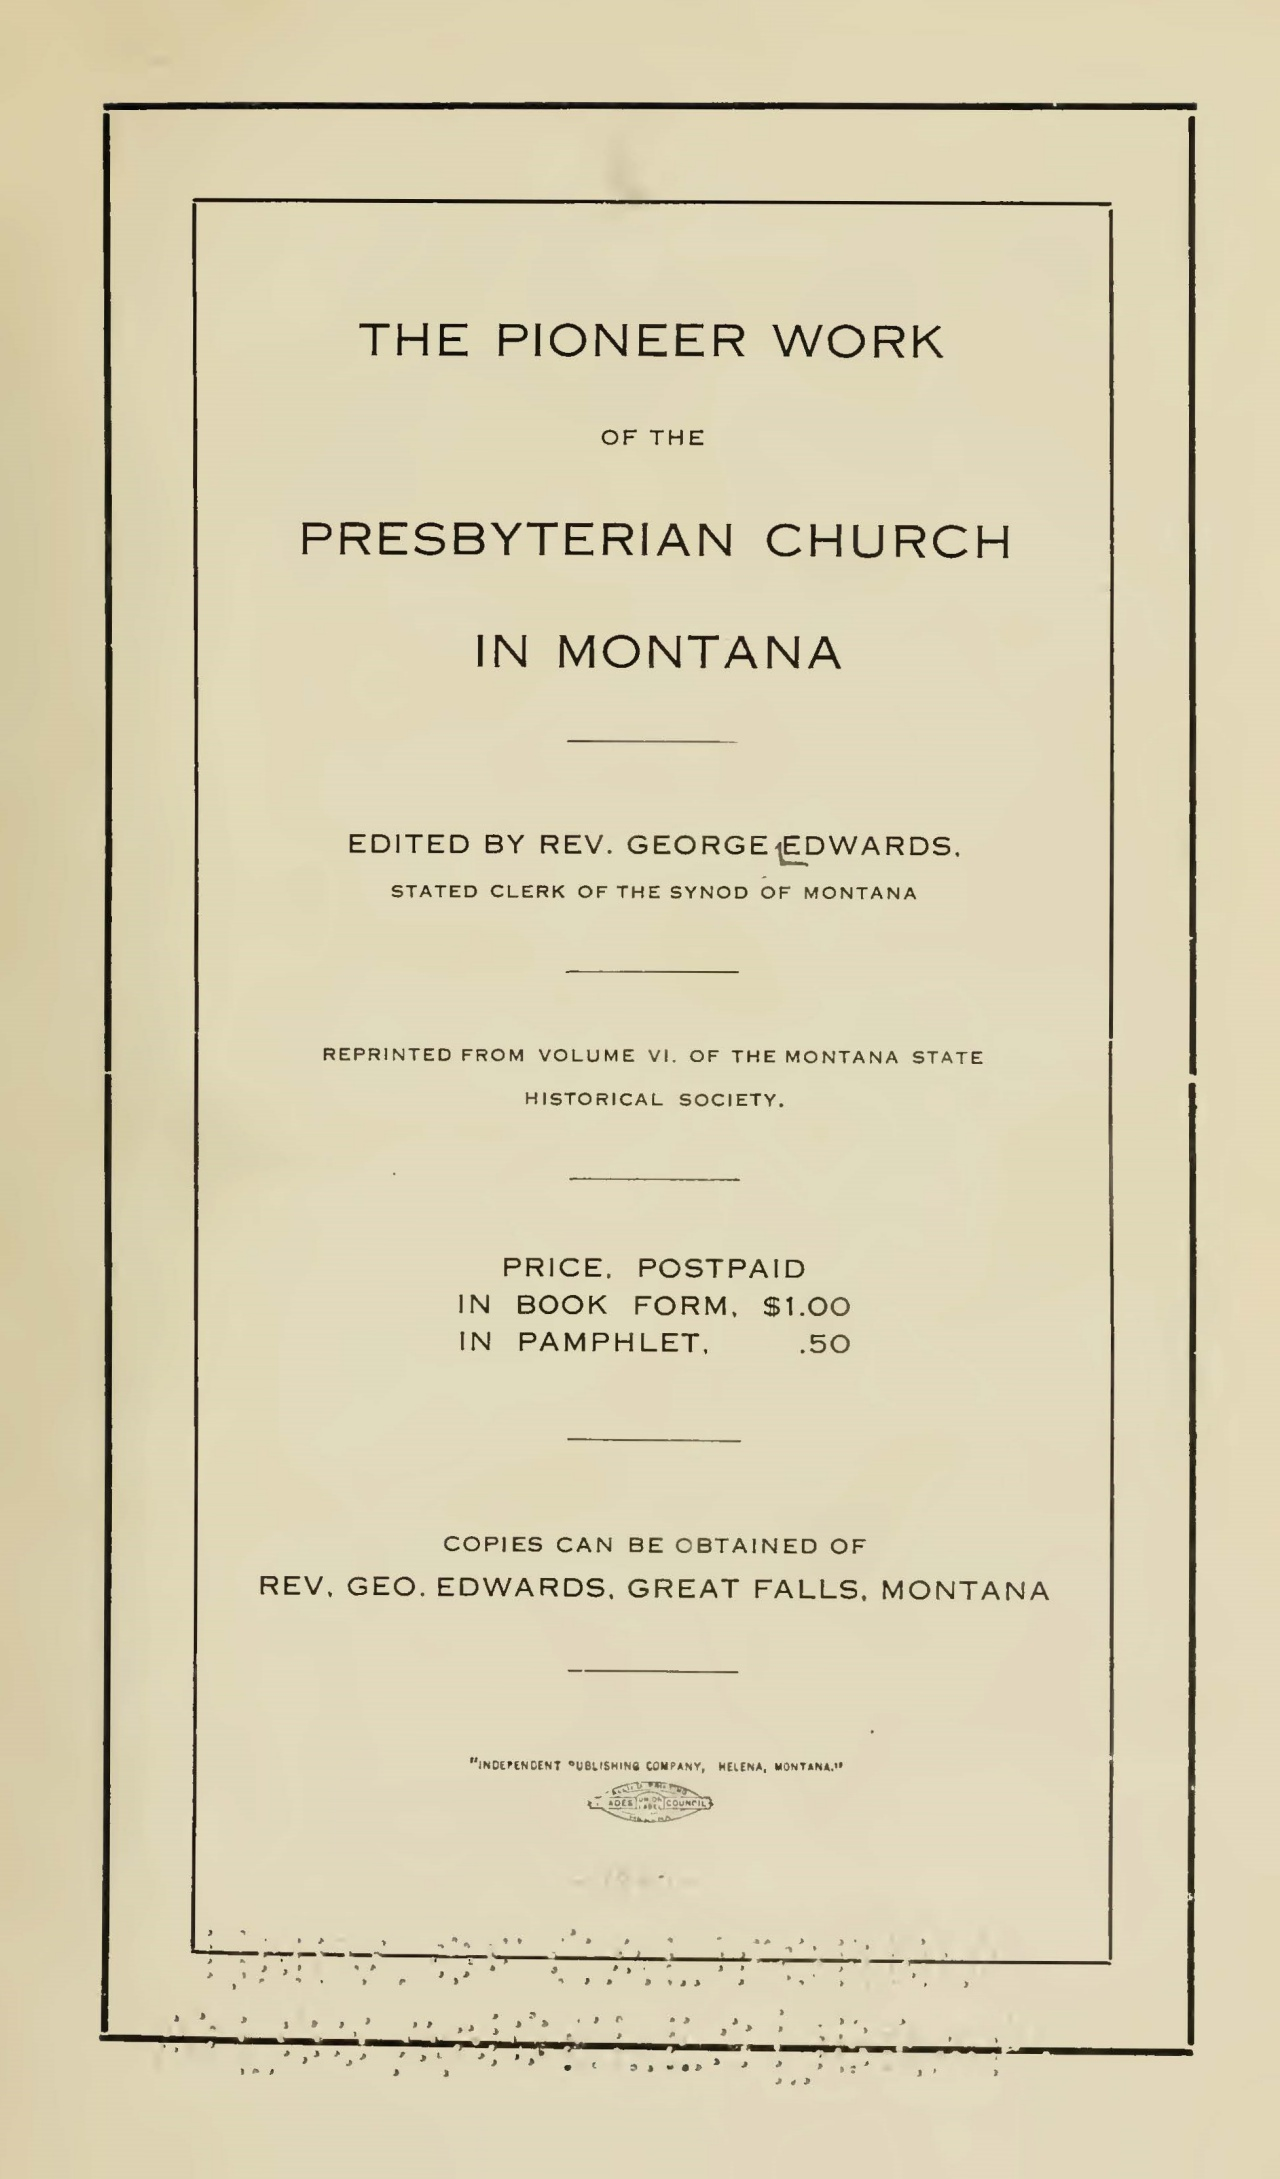 Edwards, George, The Pioneer Work of the Presbyterian Church in Montana Title Page.jpg